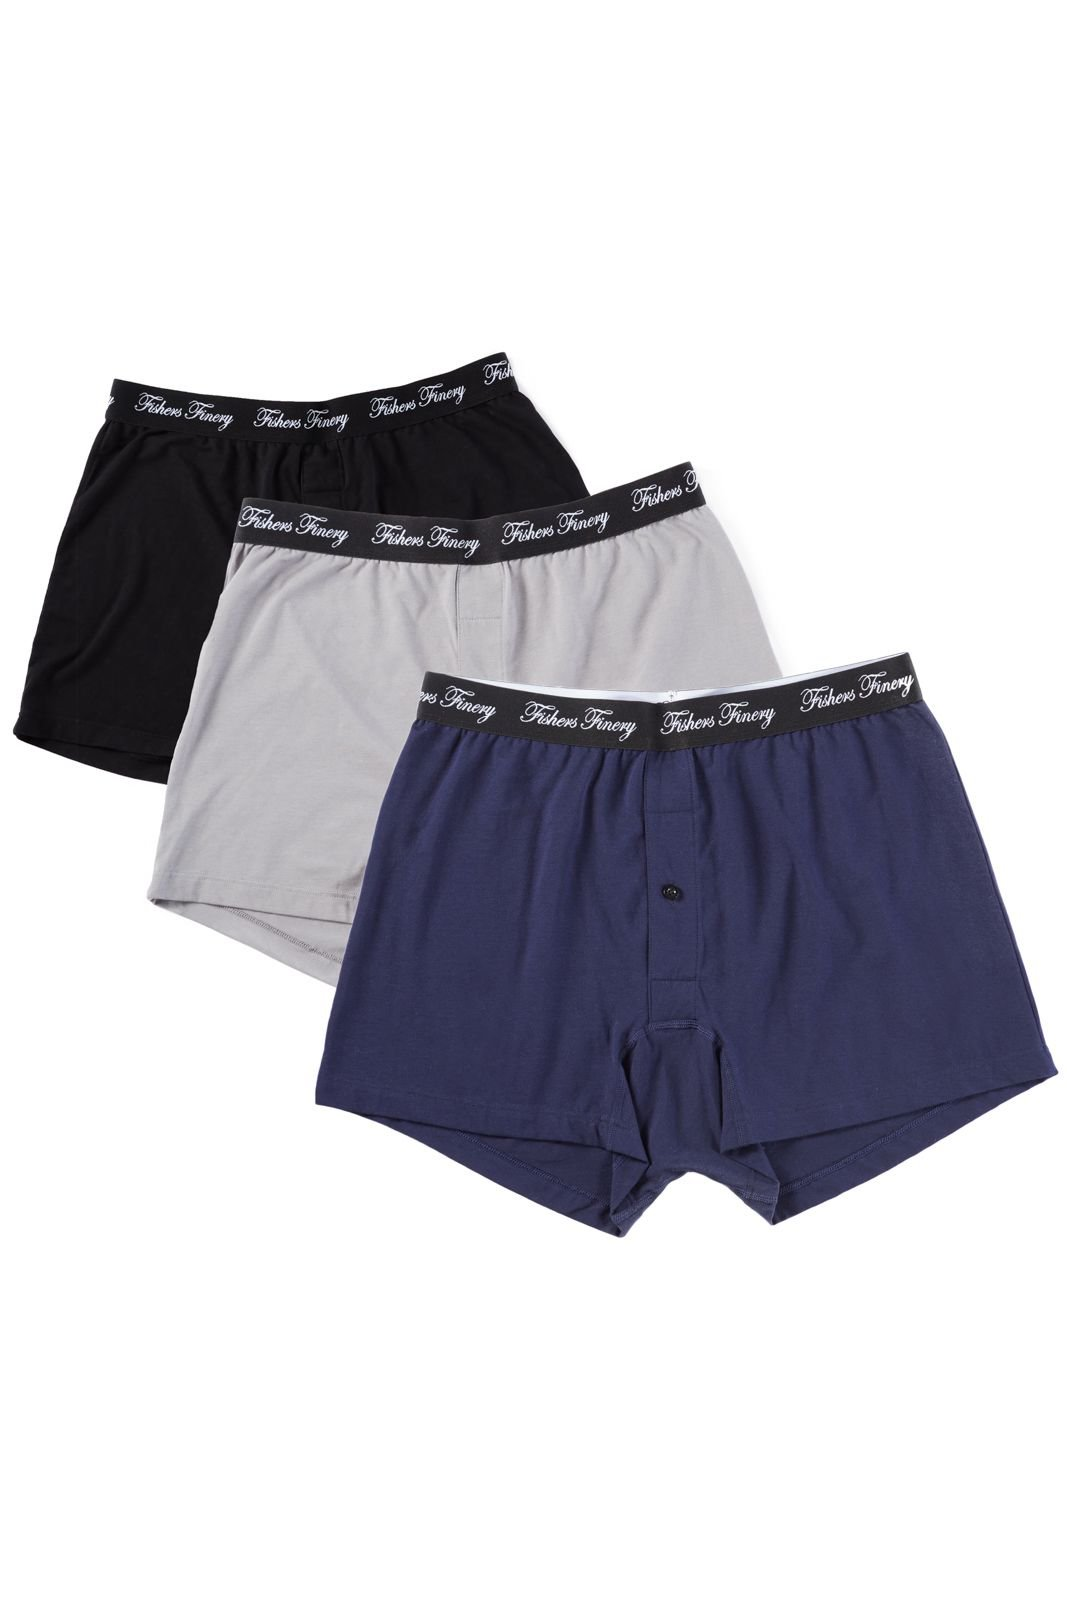 Fishers Finery Mens Tag Less Boxers Modal Cotton Microfiber; 3 Pack (Multi, XL)